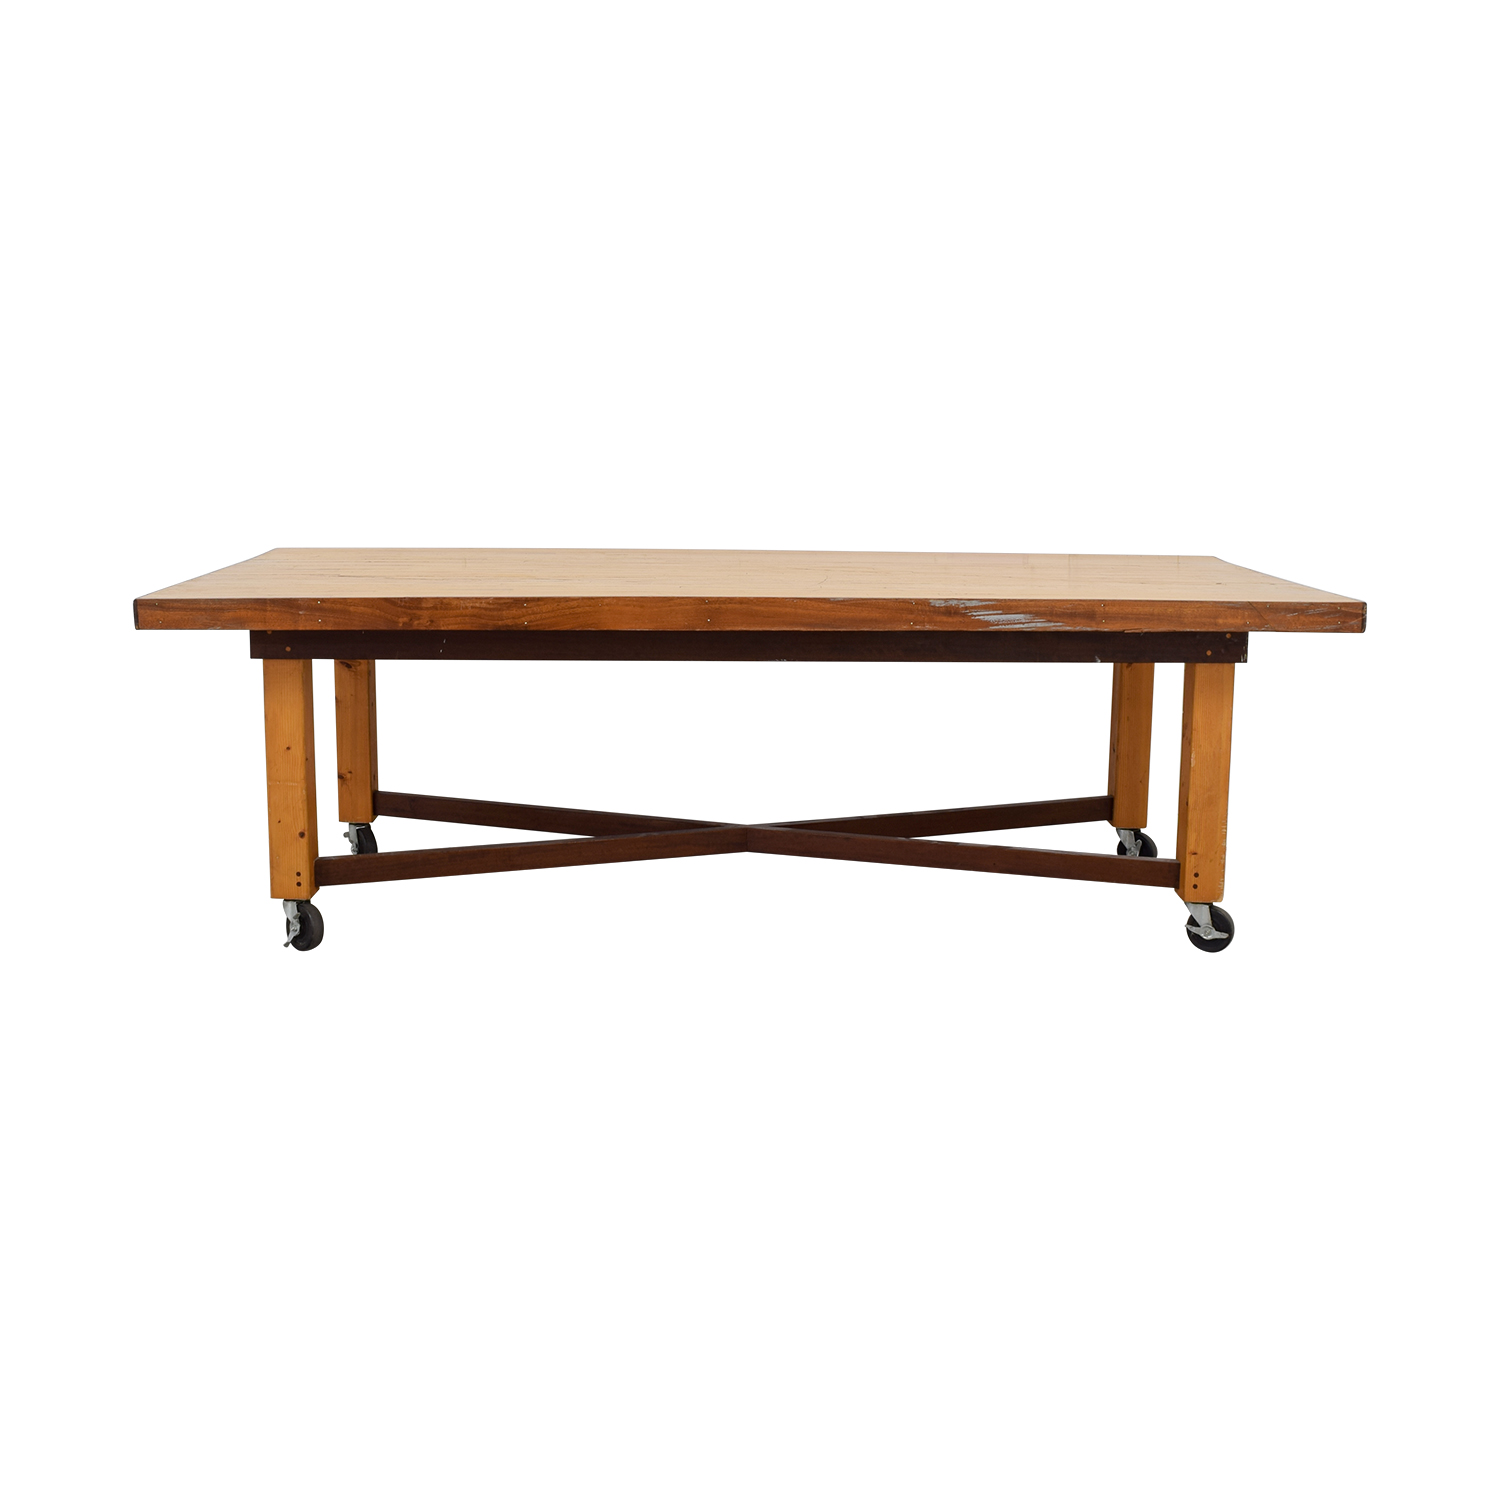 Superb 78 Off Bowling Alley Wood Dining Table Tables Gmtry Best Dining Table And Chair Ideas Images Gmtryco